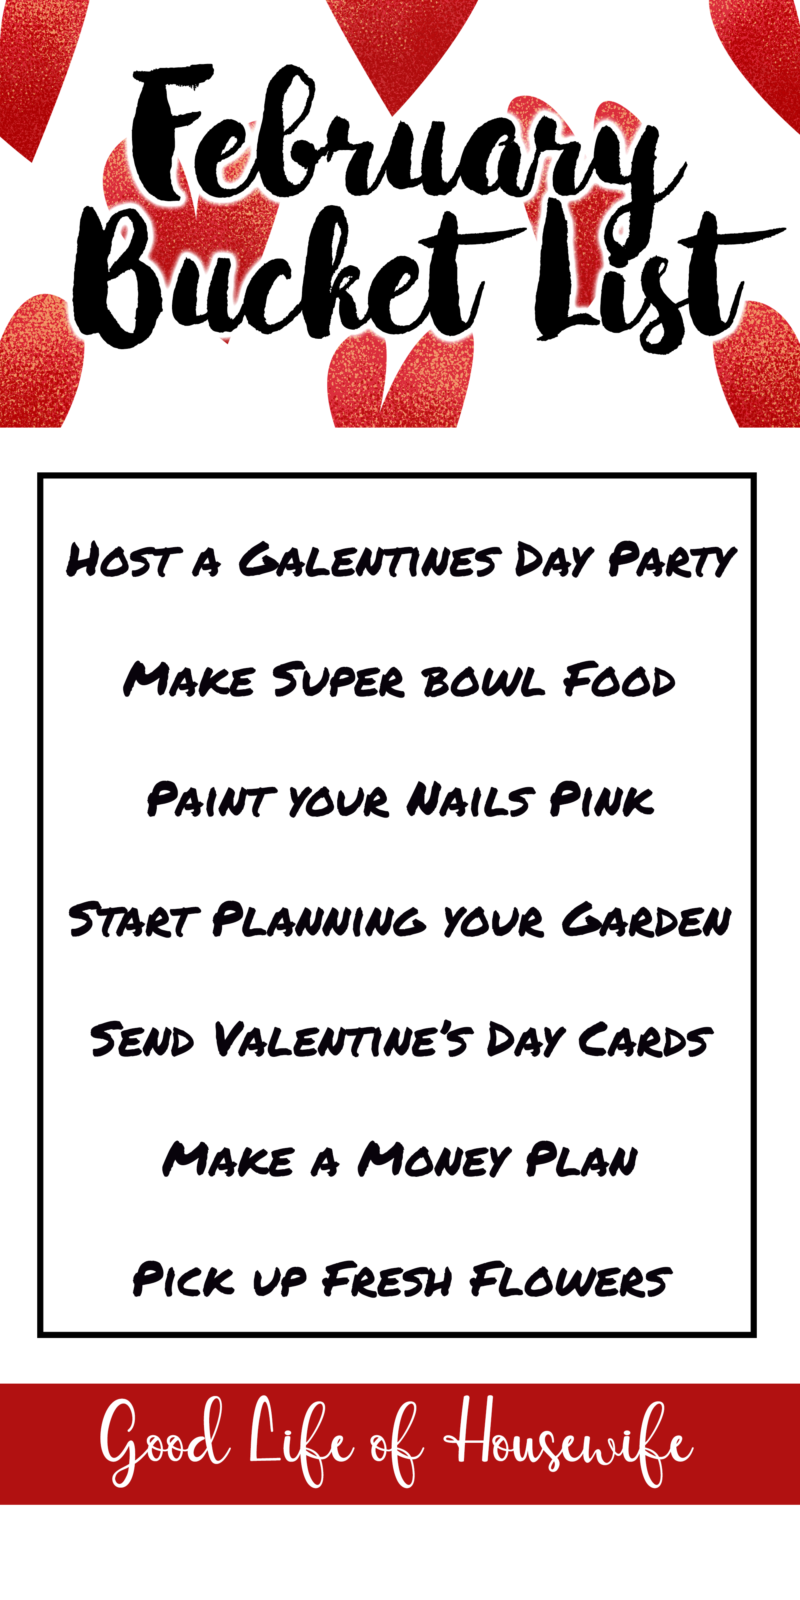 February Bucket List #February #februarybucketlist #valentine'sday